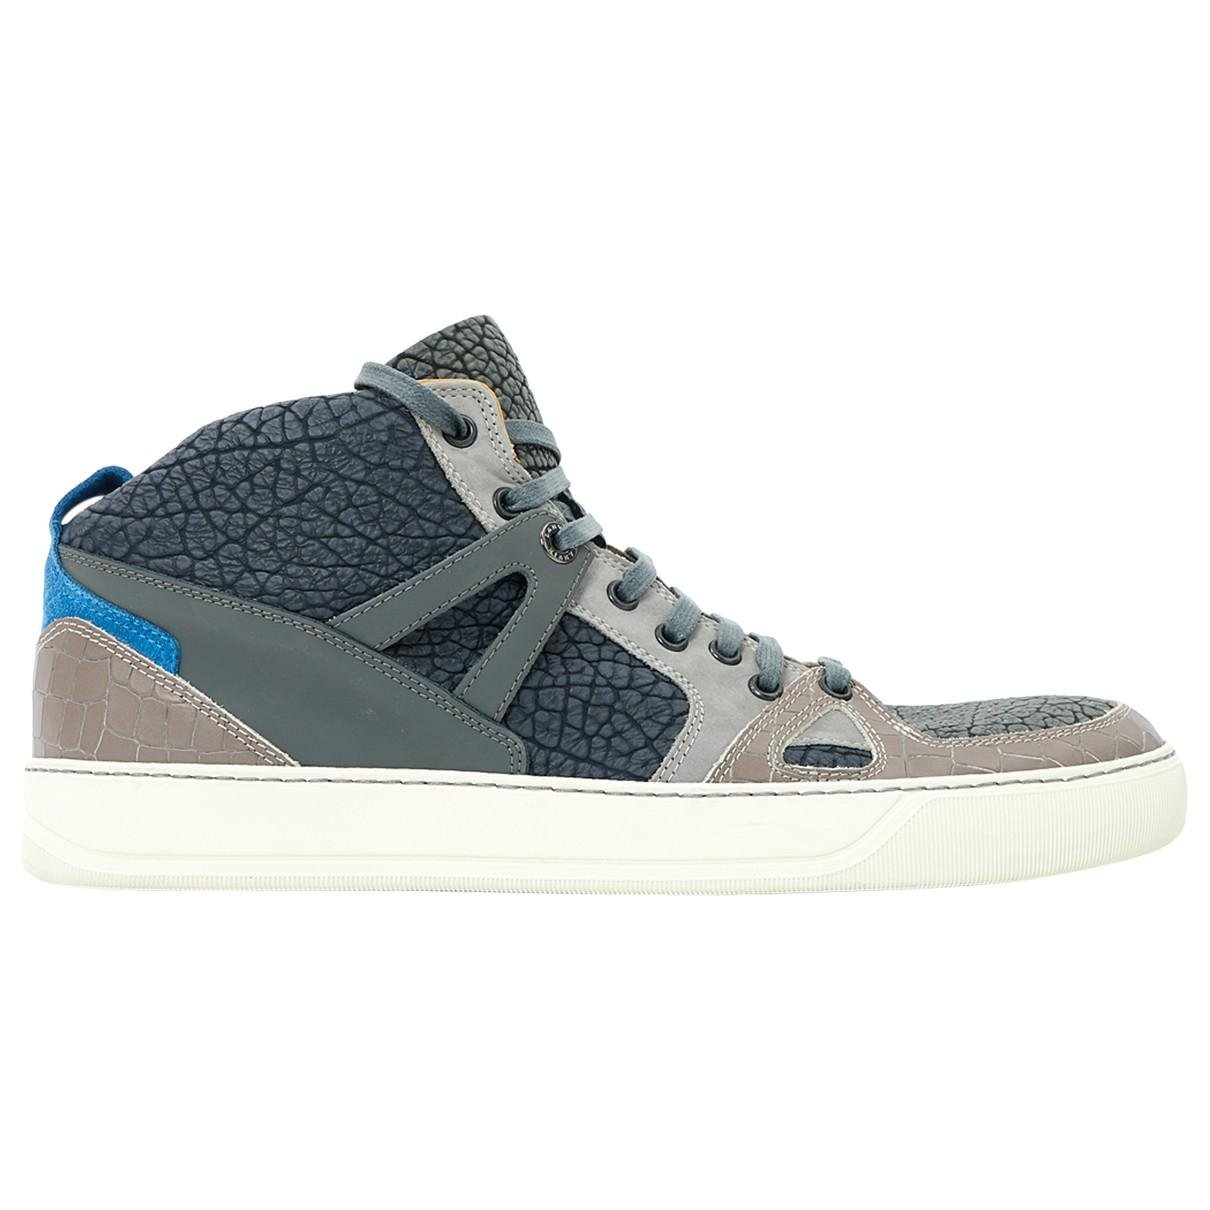 Pre-owned - Leather high trainers Lanvin lULzr